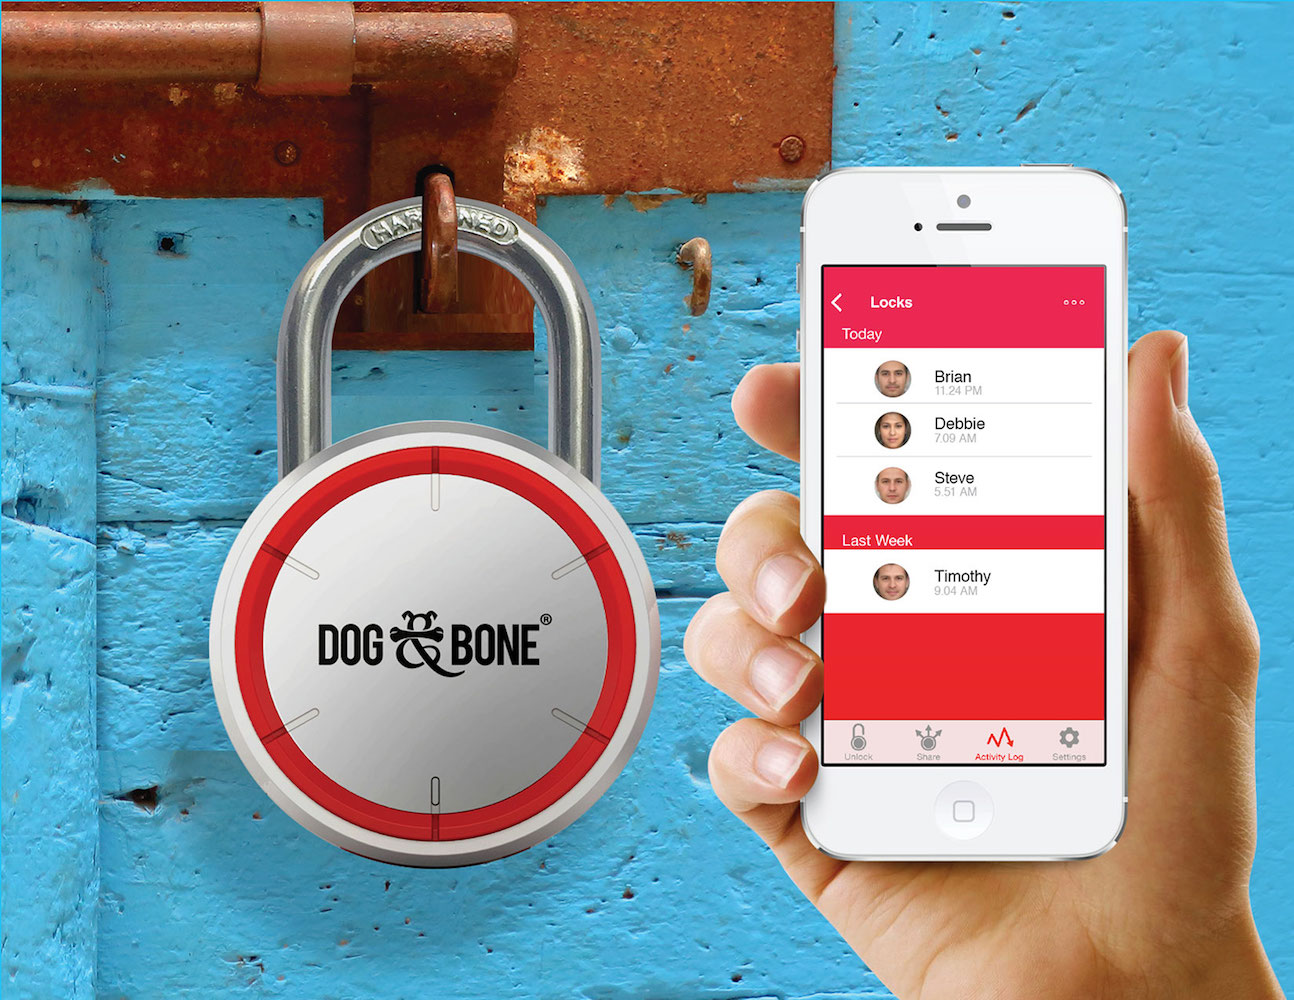 LockSmart Bluetooth Padlock by Dog & Bone